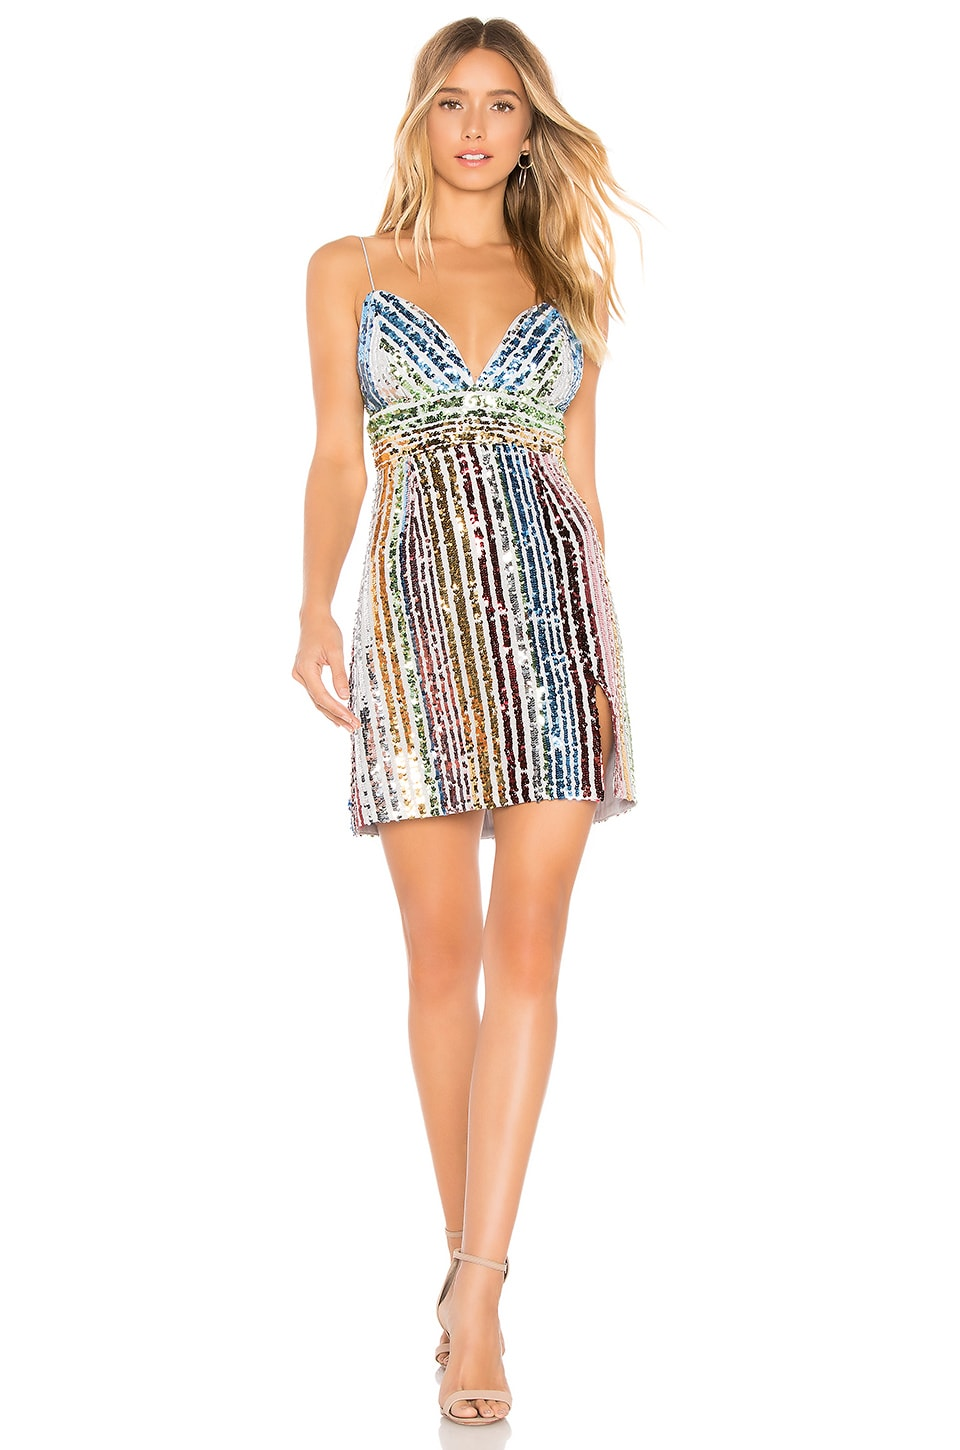 SAYLOR Tracy Dress in Multi